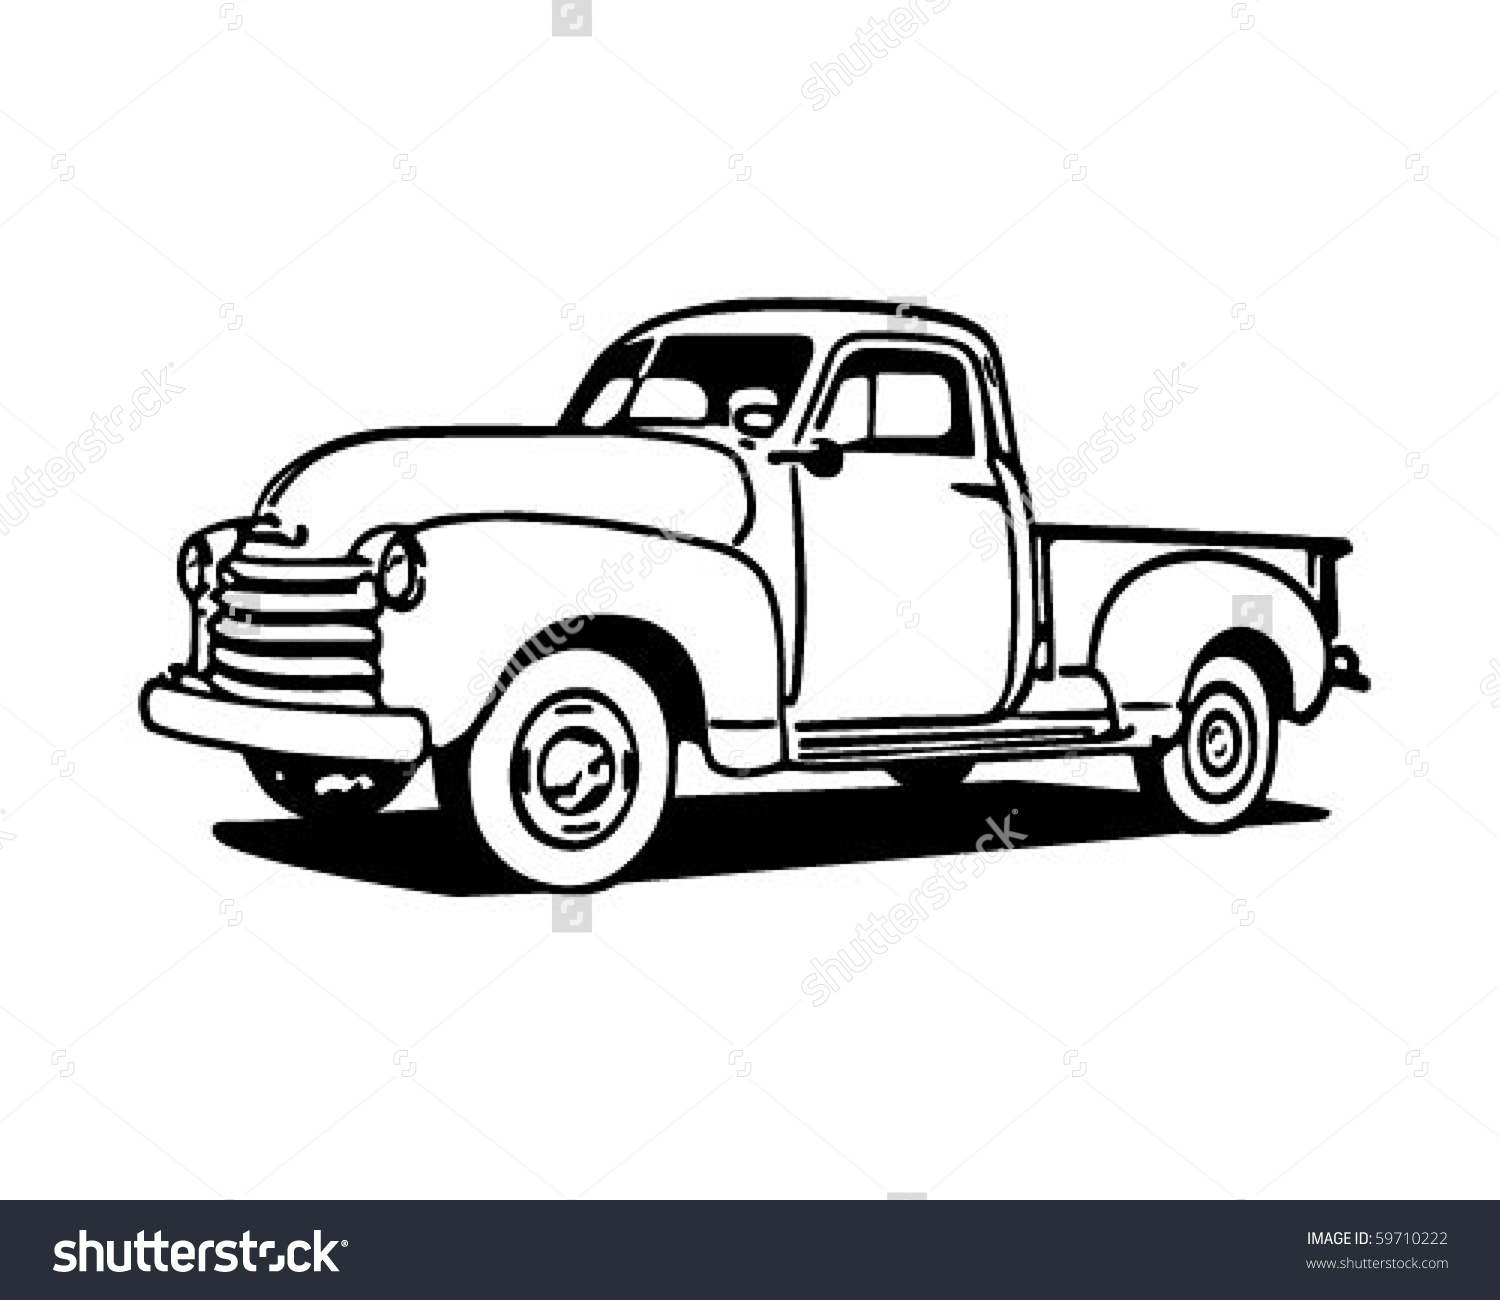 Pickup Truck Retro Clip Art Stock Vector 59710222.